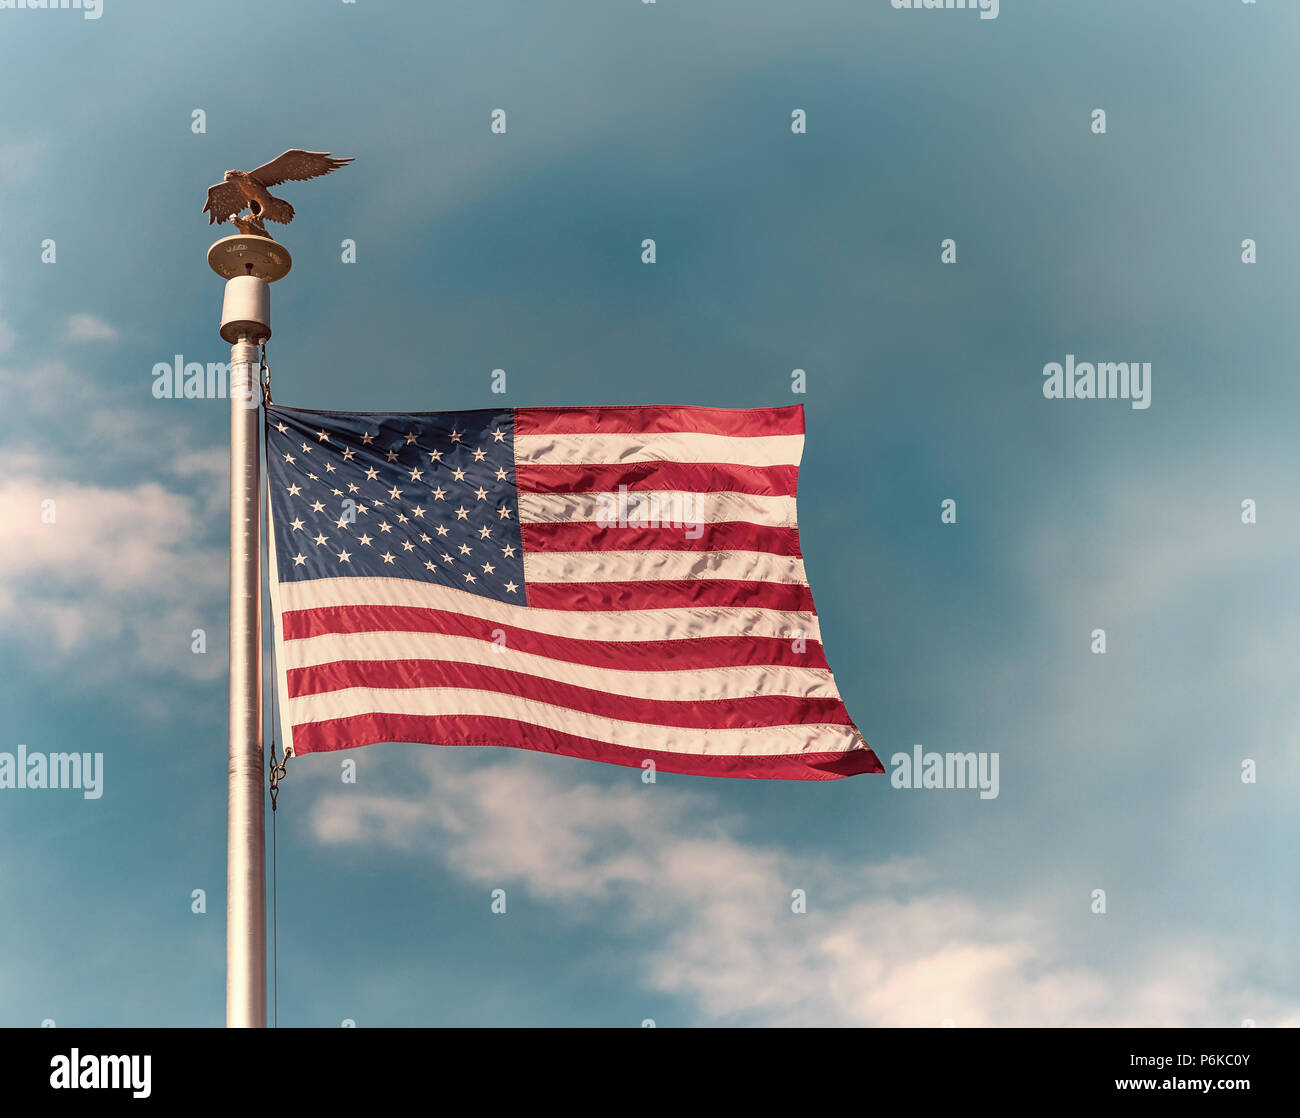 American flag on pole waving in the wind against blue sky and white clouds background. Vintage toned. - Stock Image